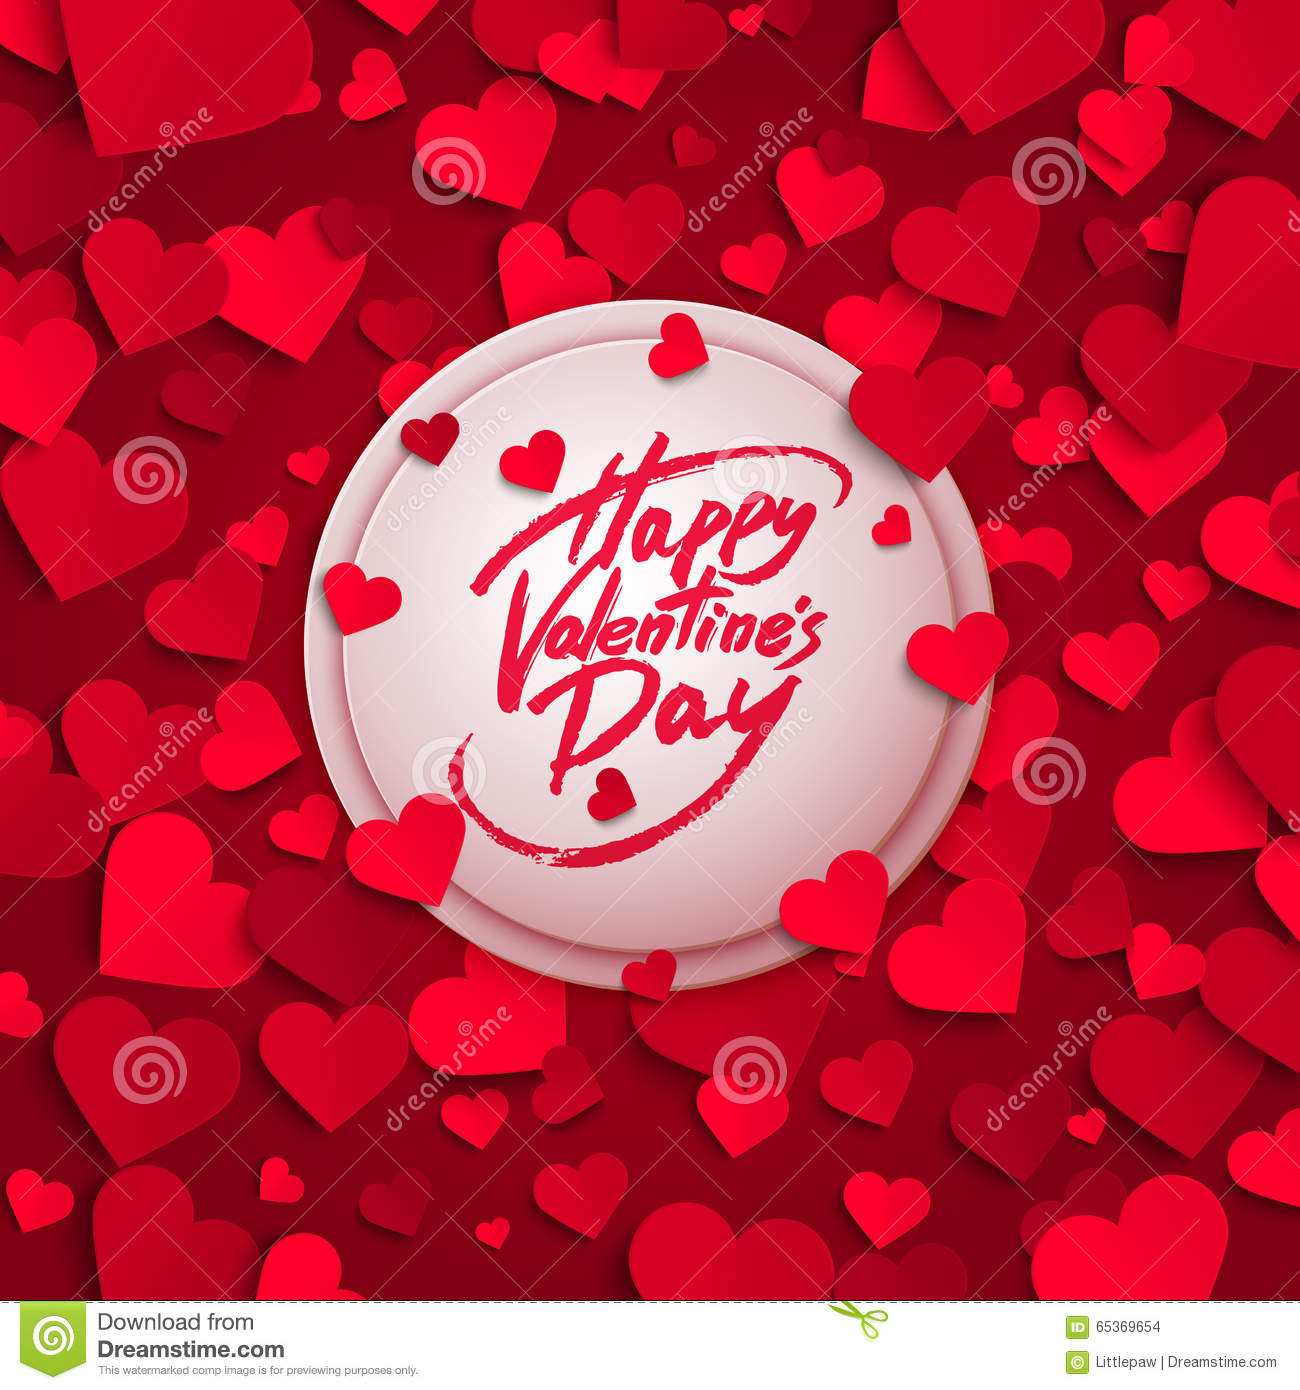 Happy Valentine s Day greeting card, brush pen lettering and red paper hearts